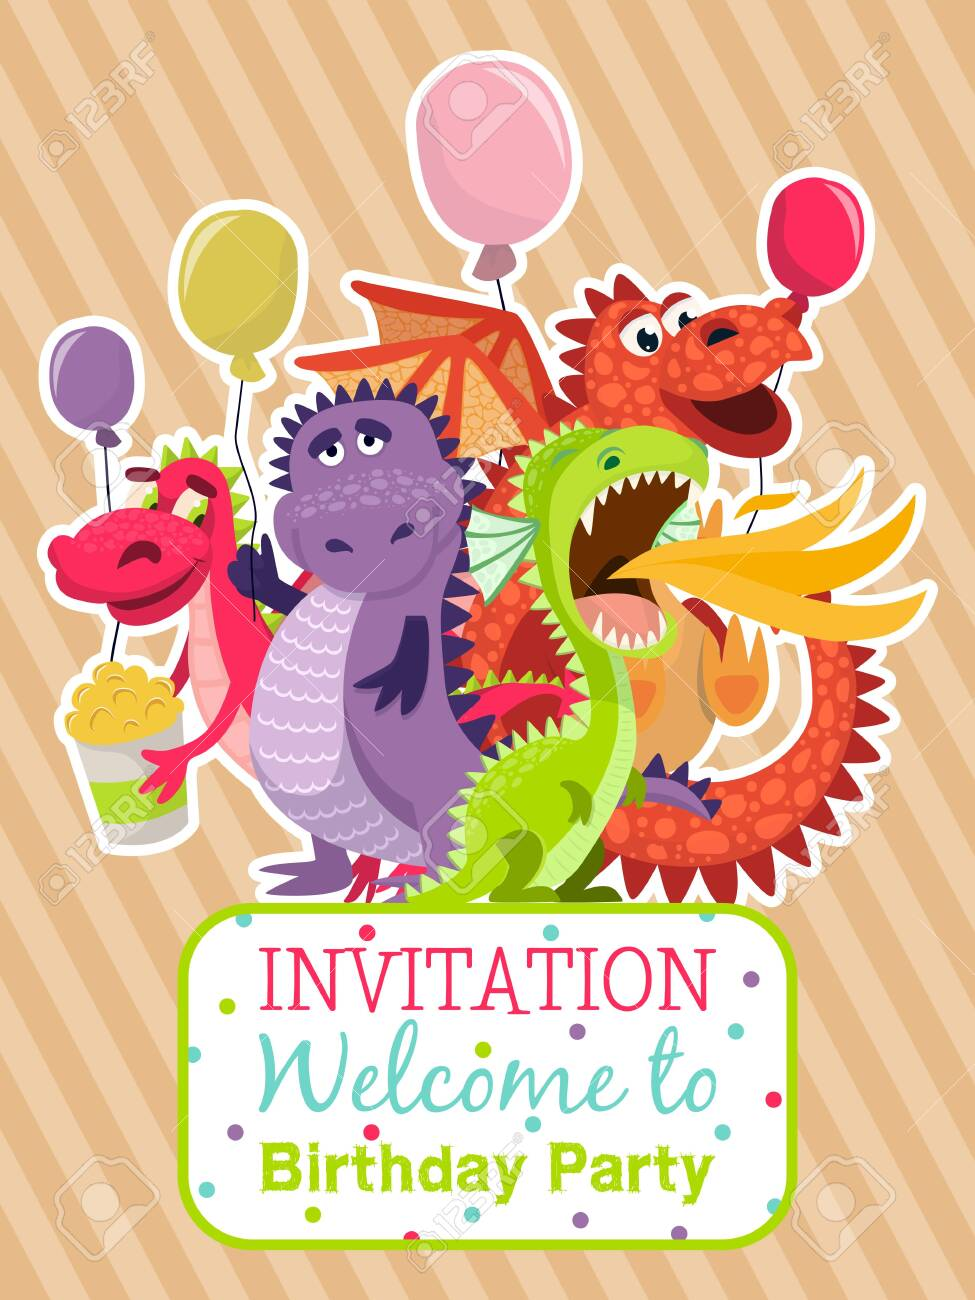 Baby dragons poster, invitation card vector illustration . Cartoon funny dragons with wings. Fairy dinosaurs with pop corn and baloons. Welcome to birthday party. Dragon breathing fire. Celebration. - 124132872